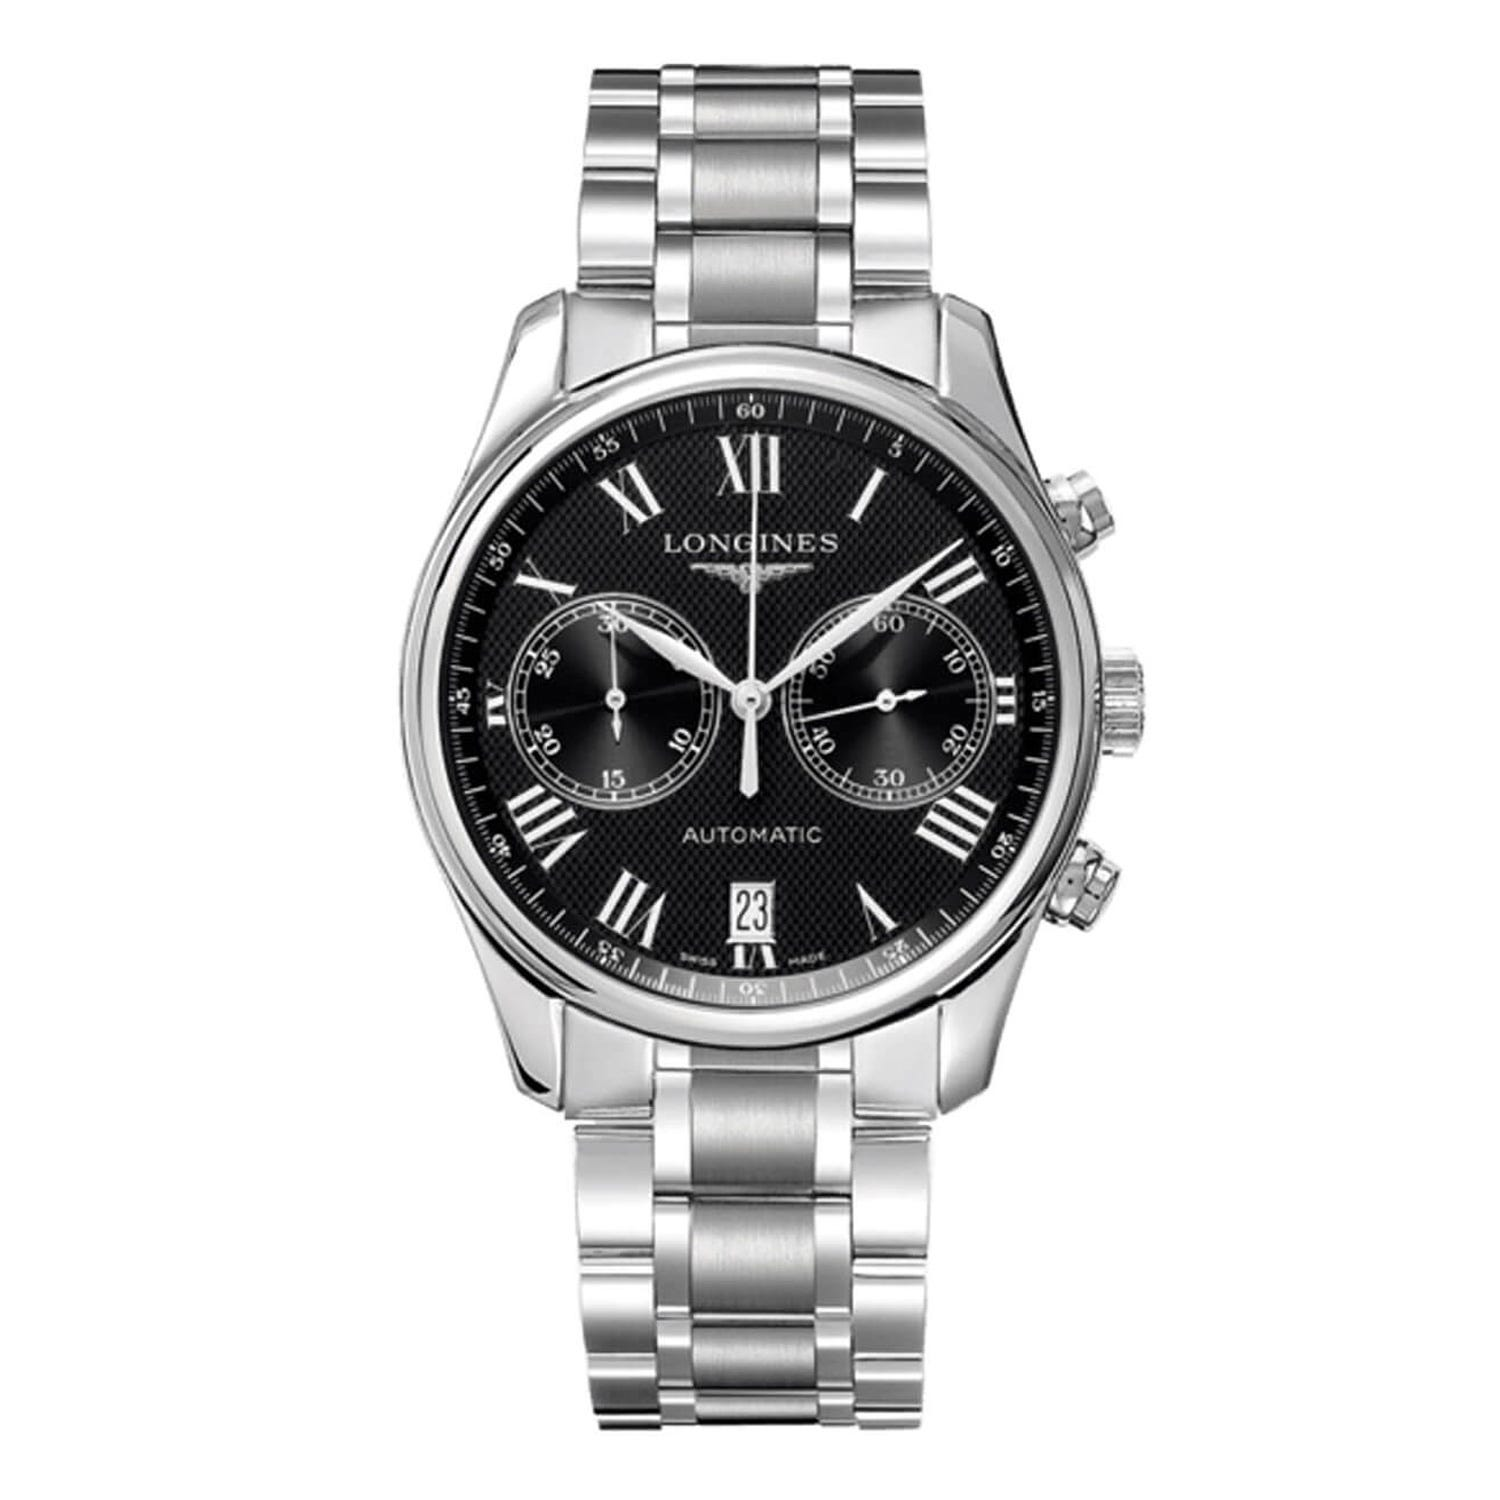 Longines Master Collection men's stainless steel chronograph watch